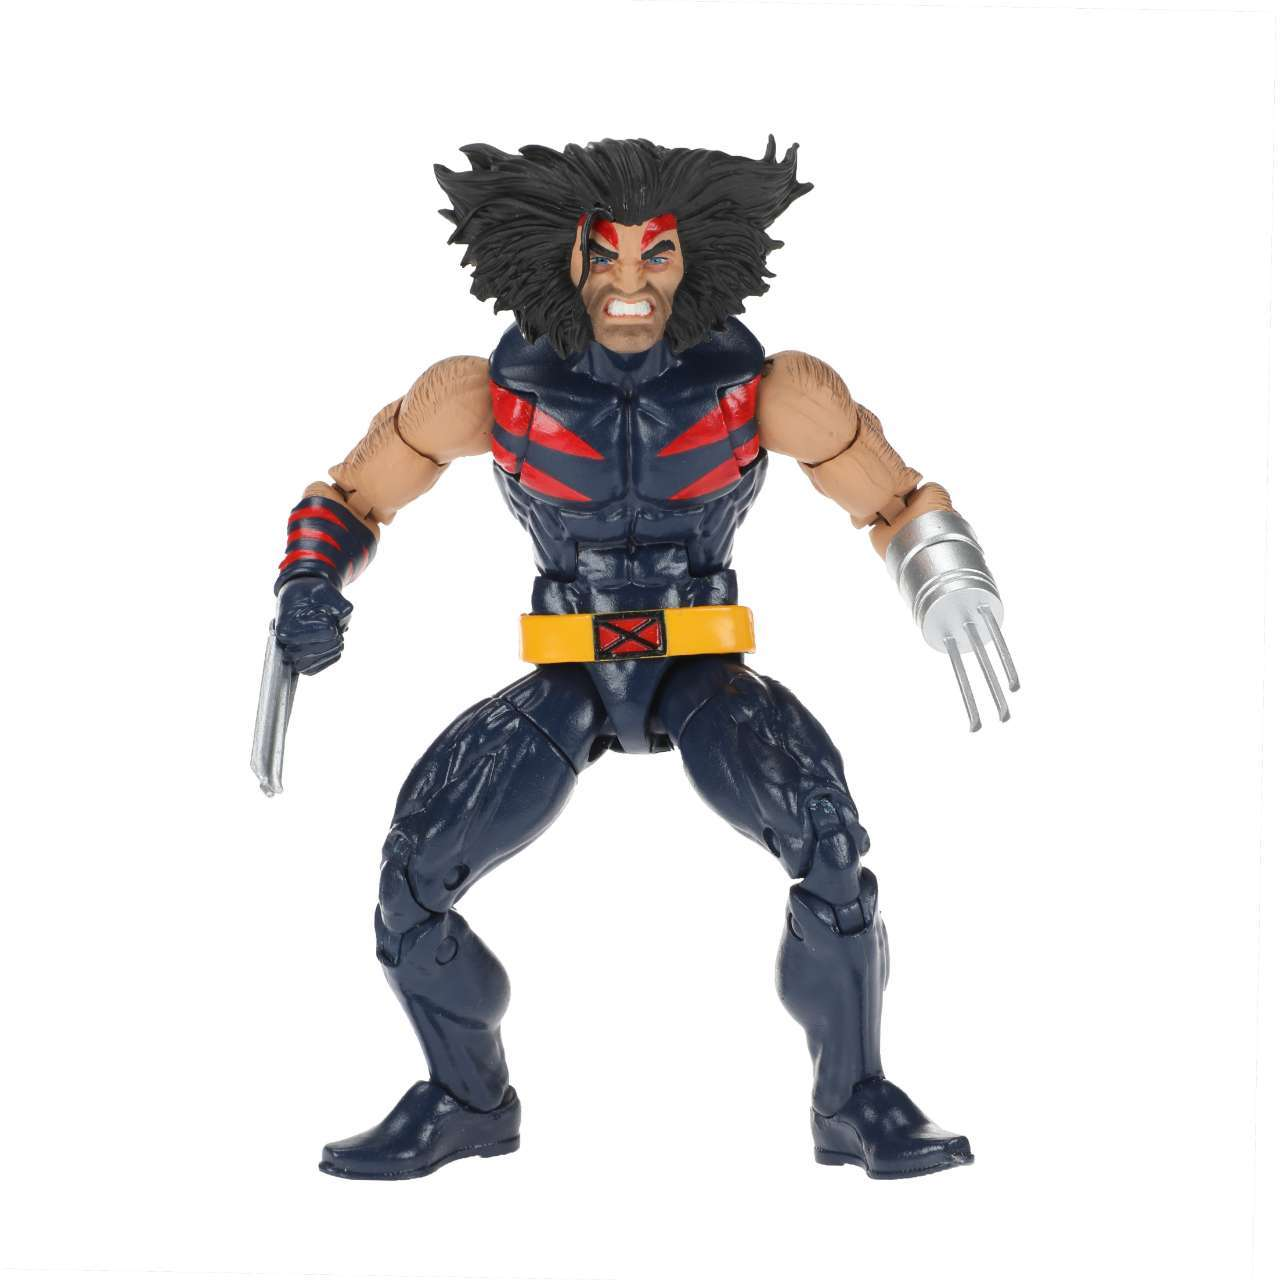 HASBRO MARVEL LEGENDS SERIES 6-INCH WEAPON X